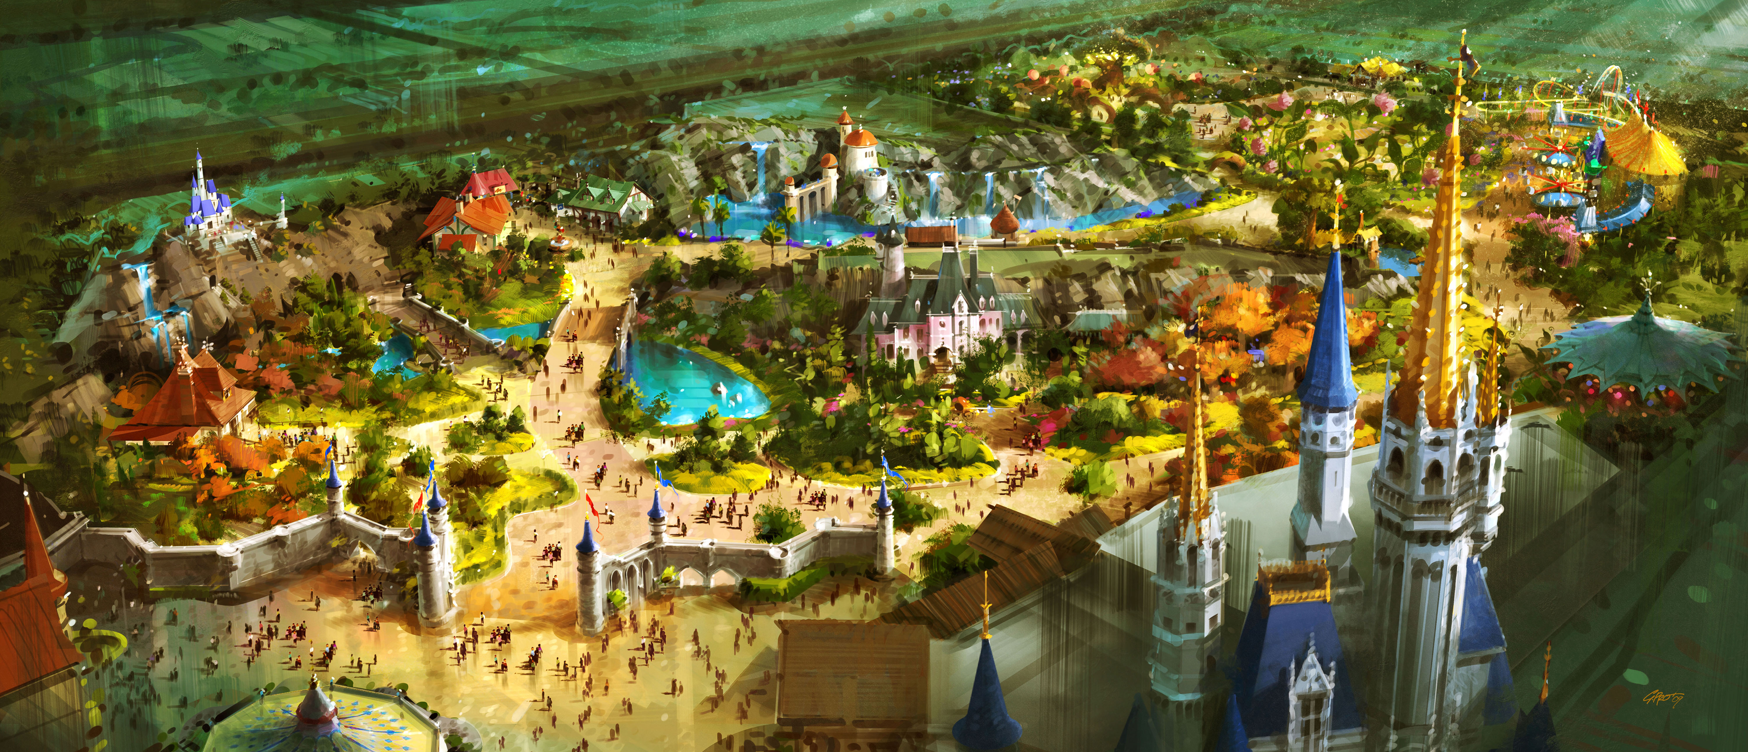 walt disney world future plans Walt disney world wdw wdw  creative officer at walt disney  who wanted to return here in the future finally, there were plans to add a .